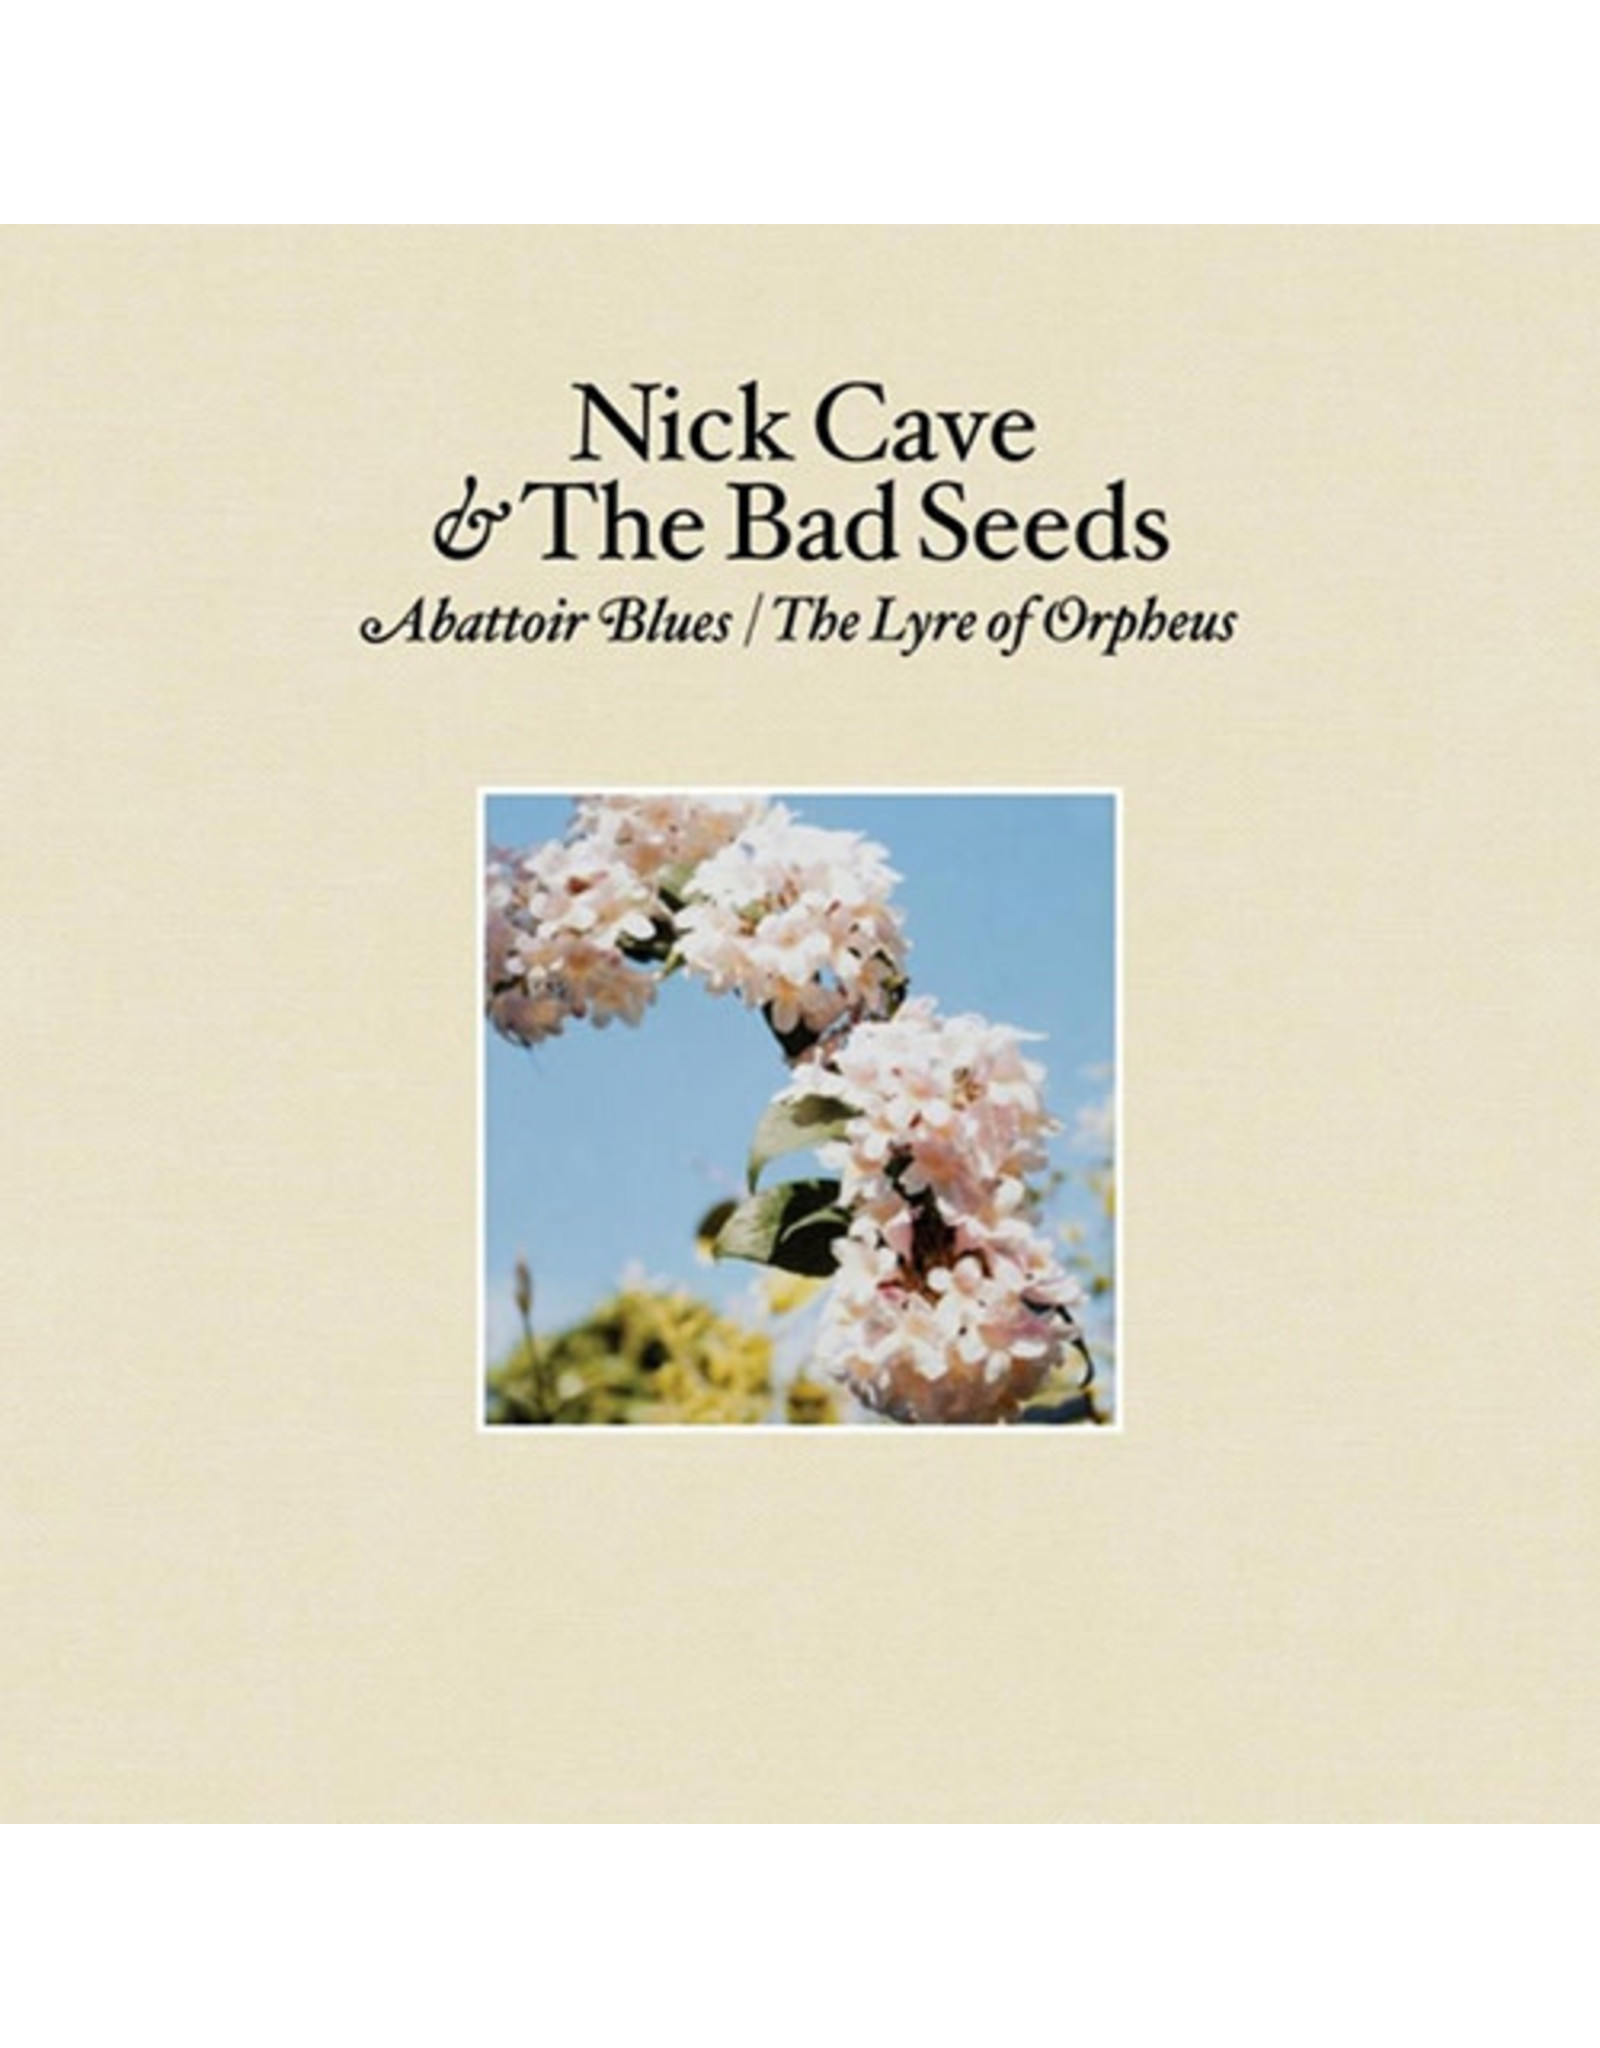 Mute Cave, Nick & The Bad Seeds: Abattoir Blues LP